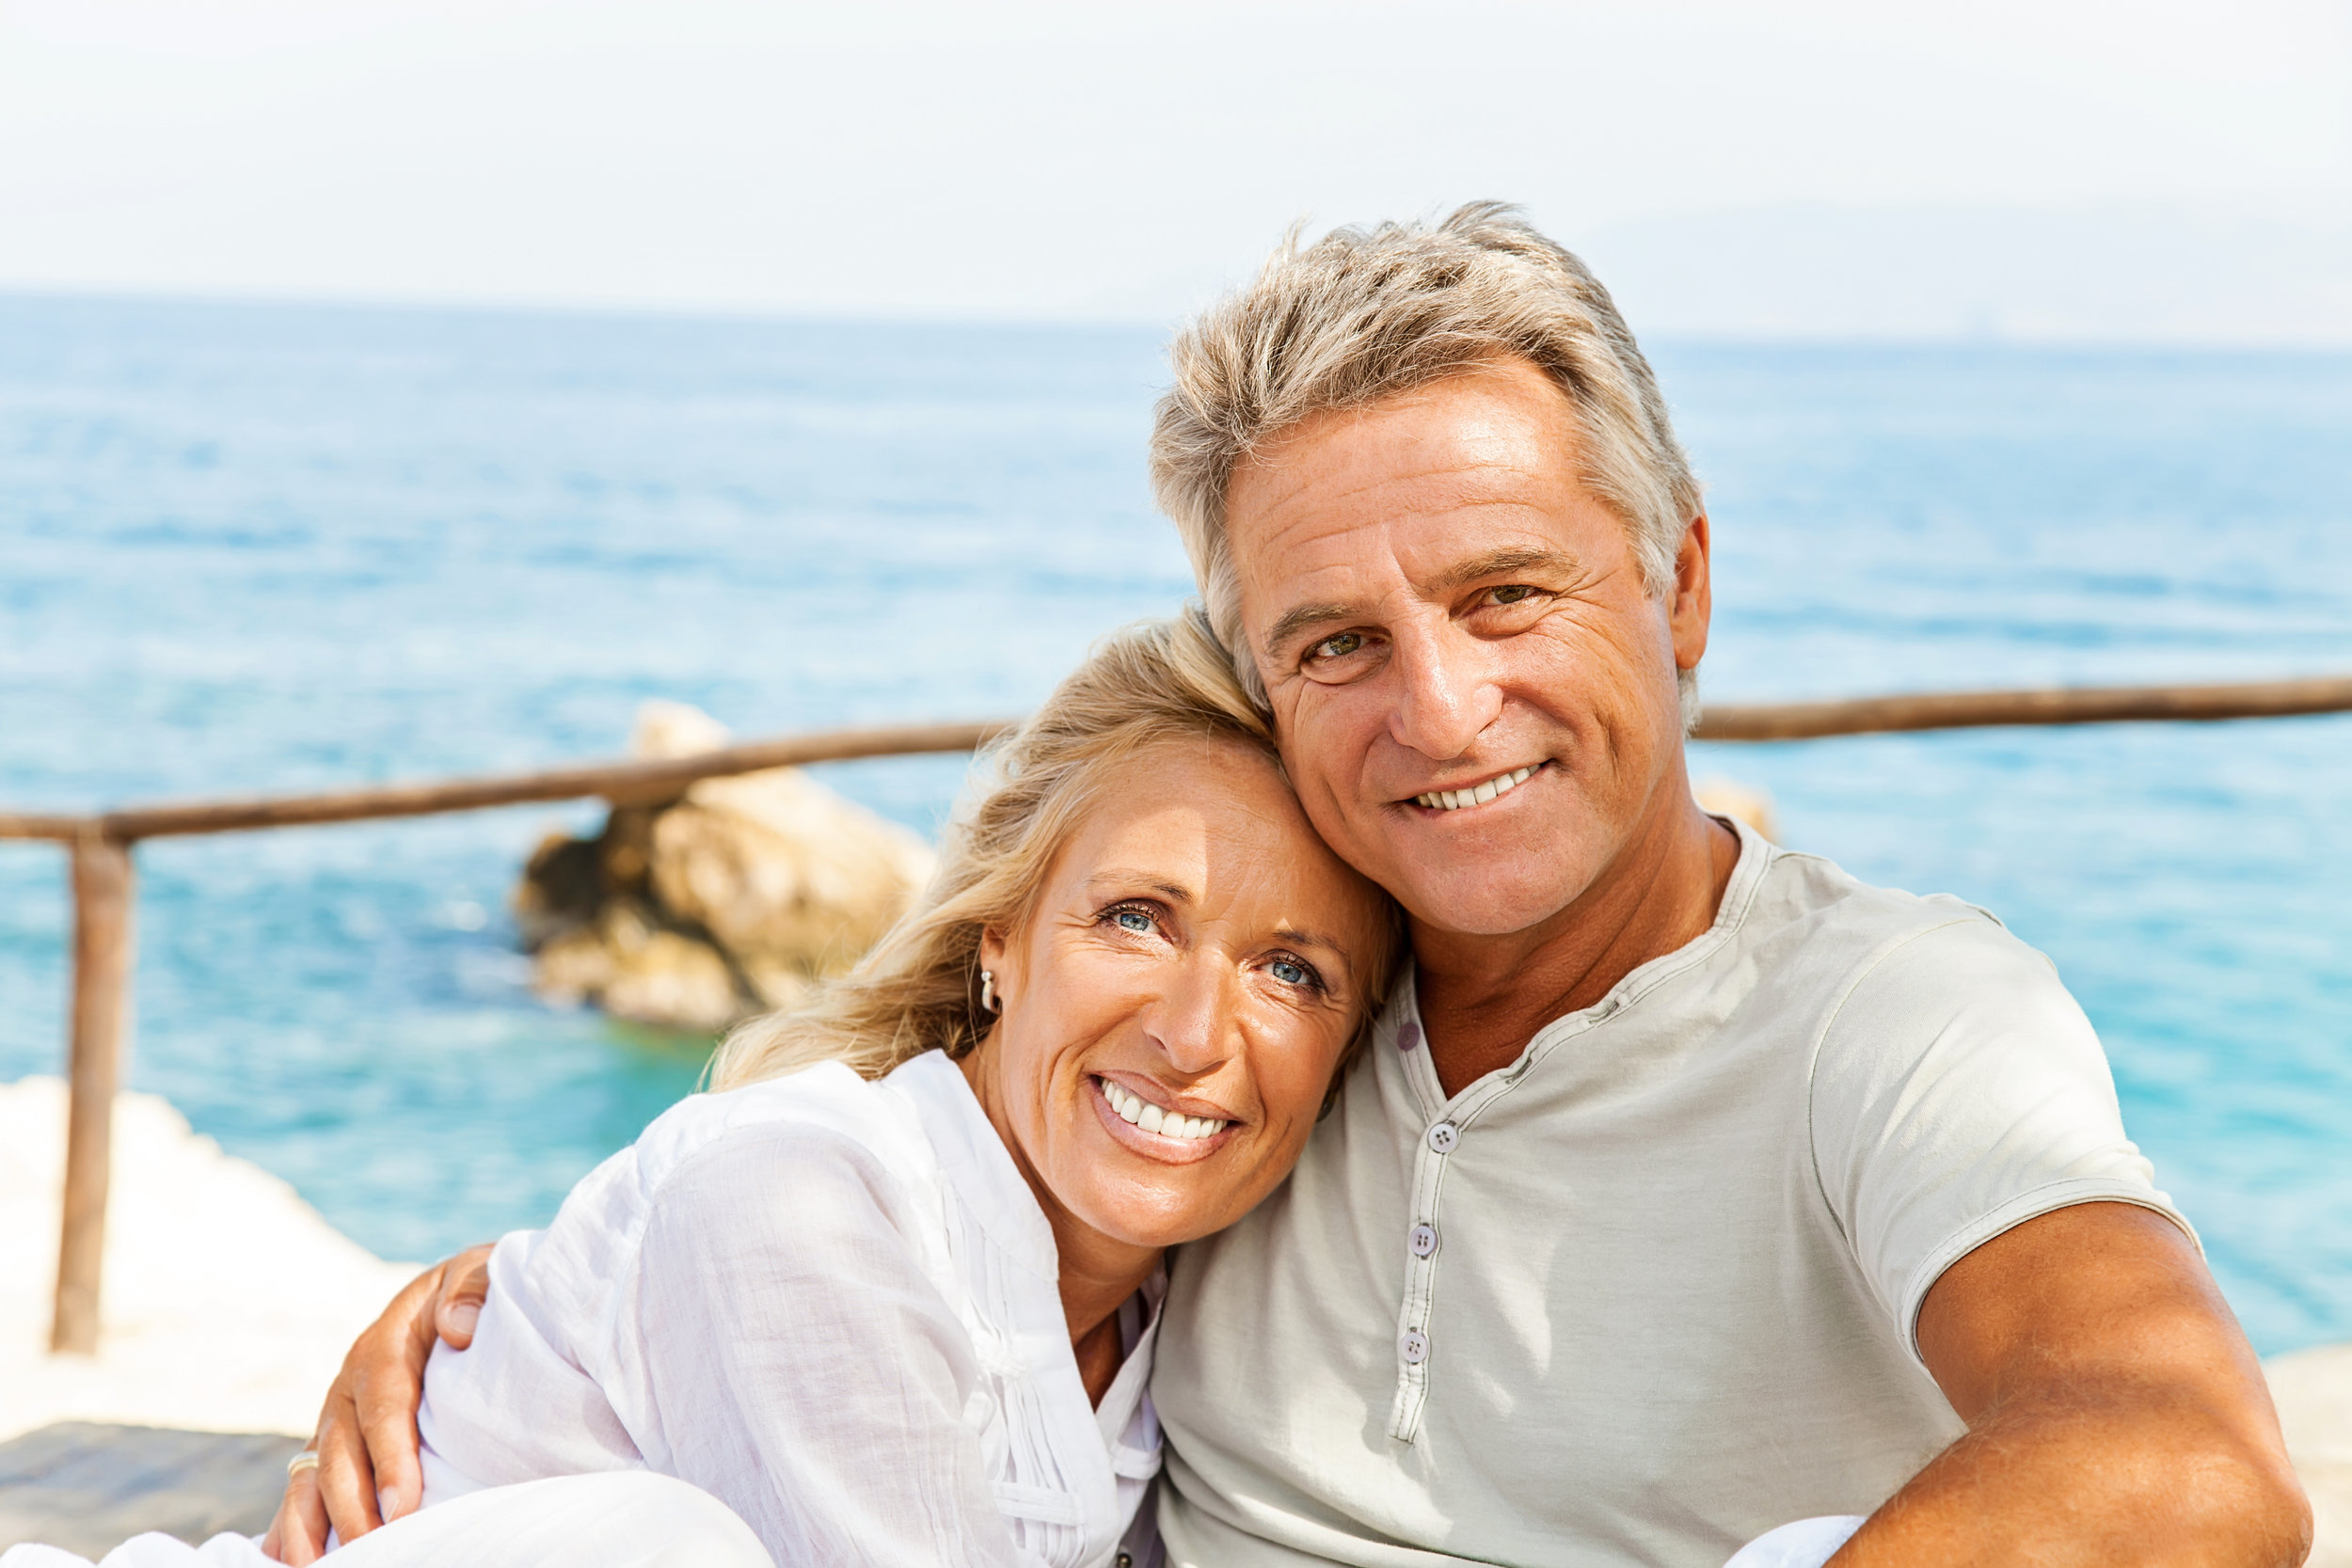 couple in their 50s - water background copy.jpg